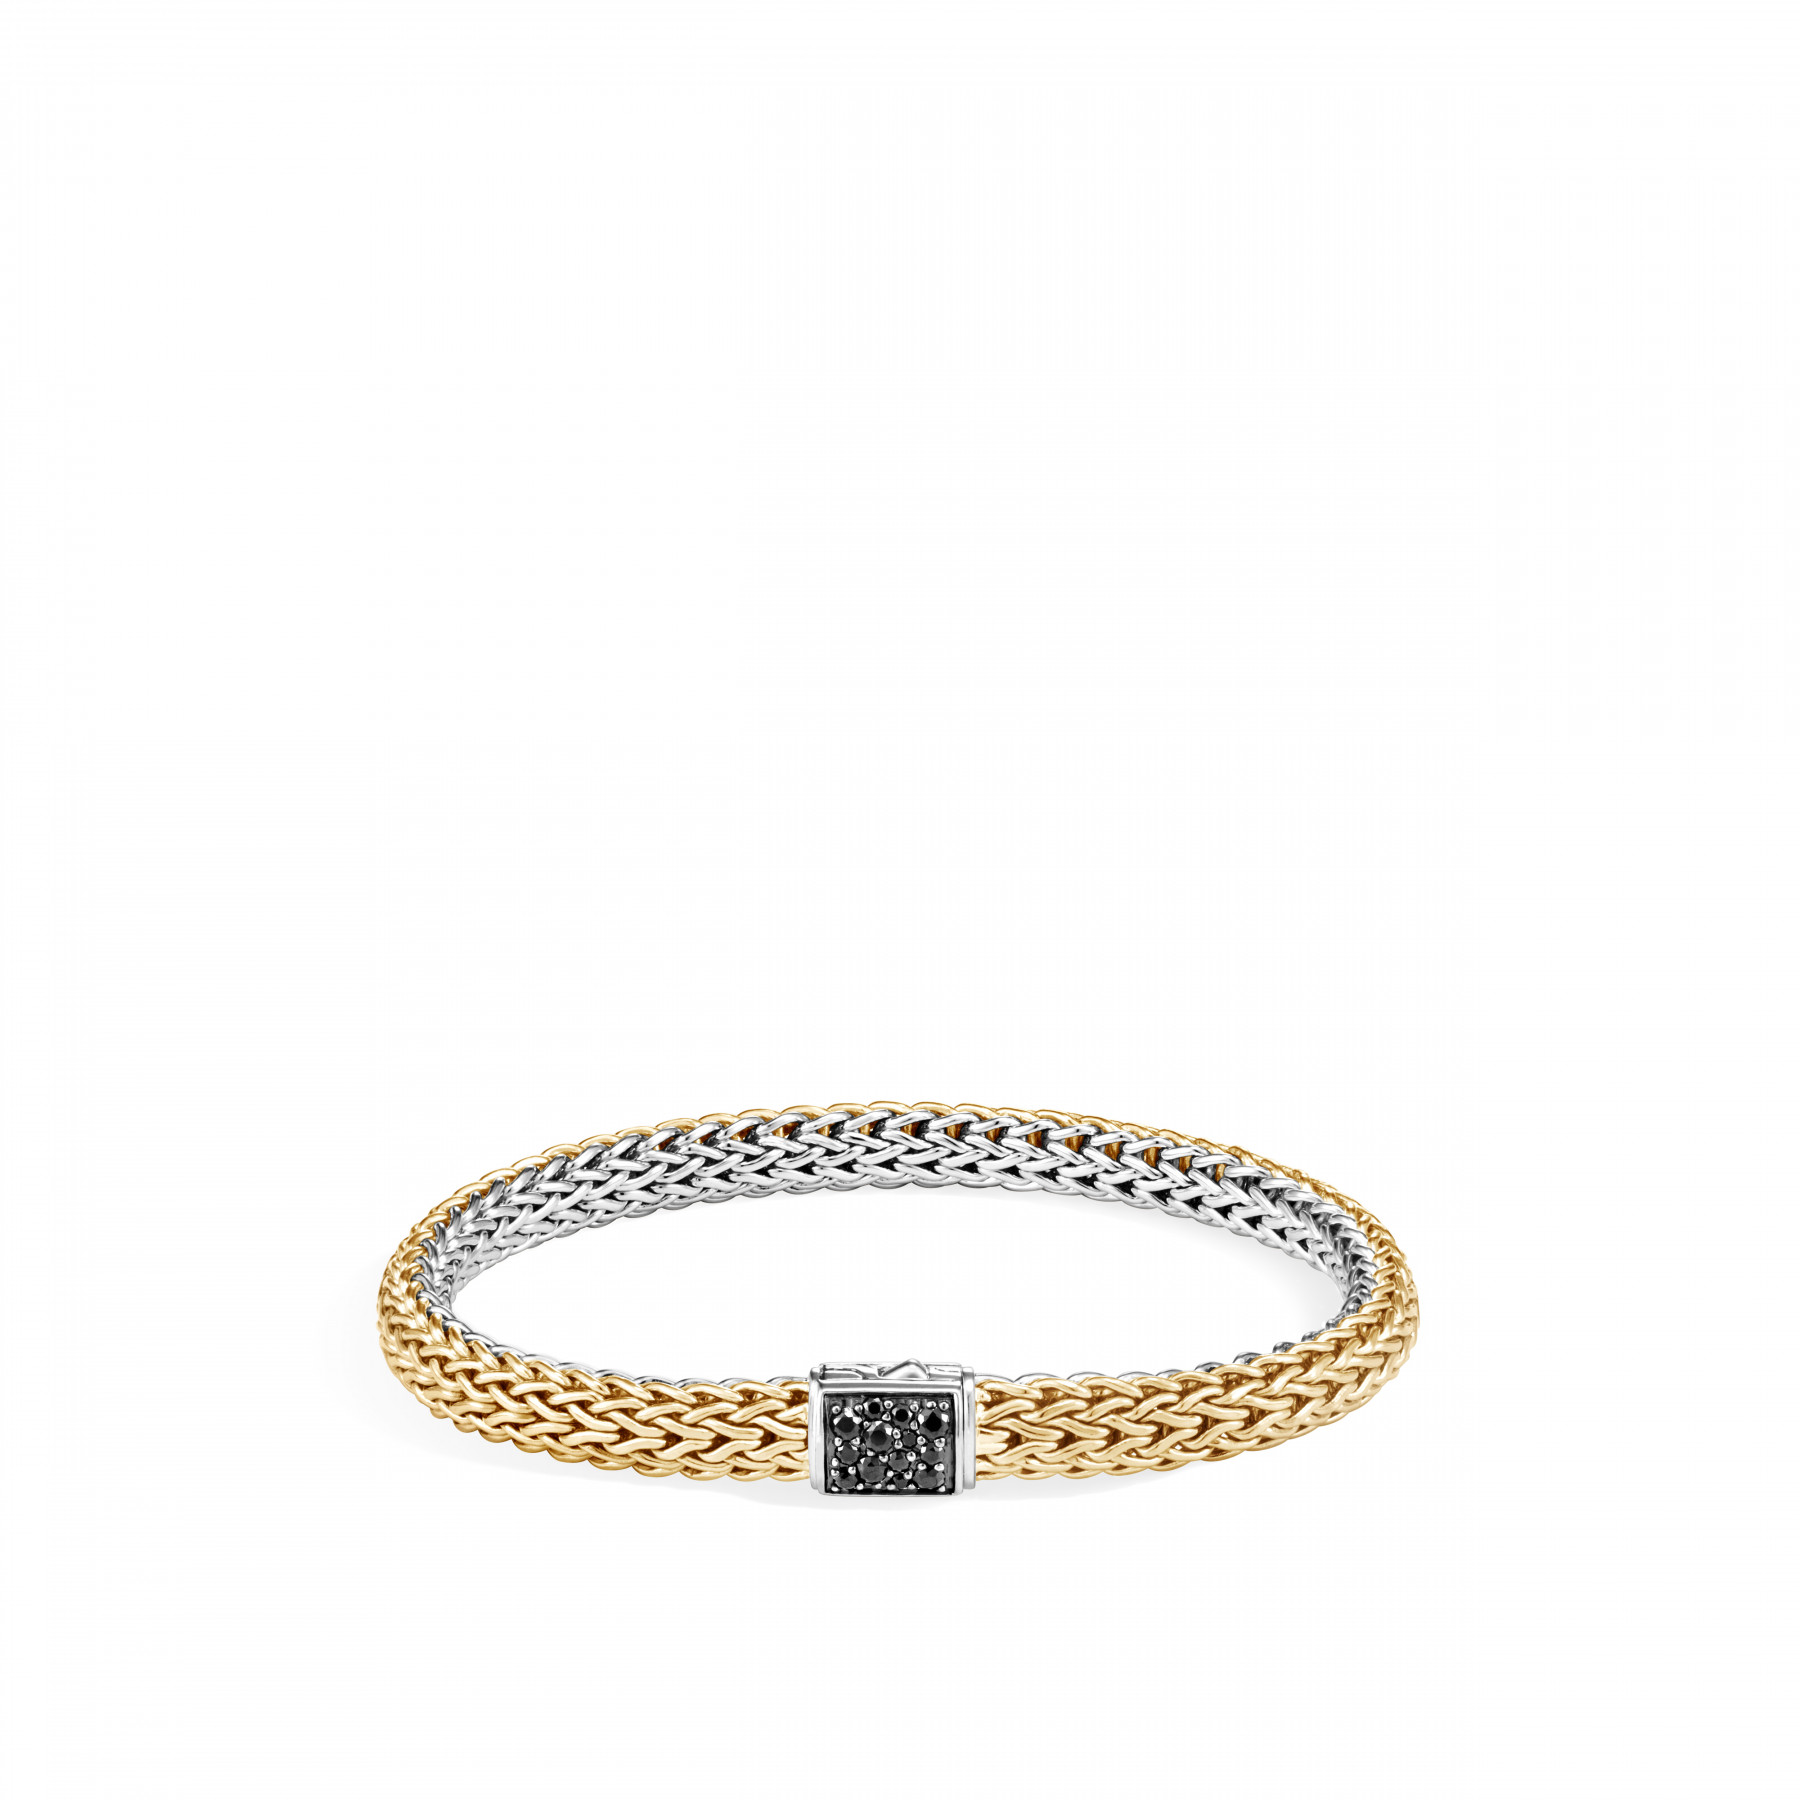 John Hardy Classic Chain Two Tone Gemstone Bracelet with Diamonds and Sapphires (5mm)